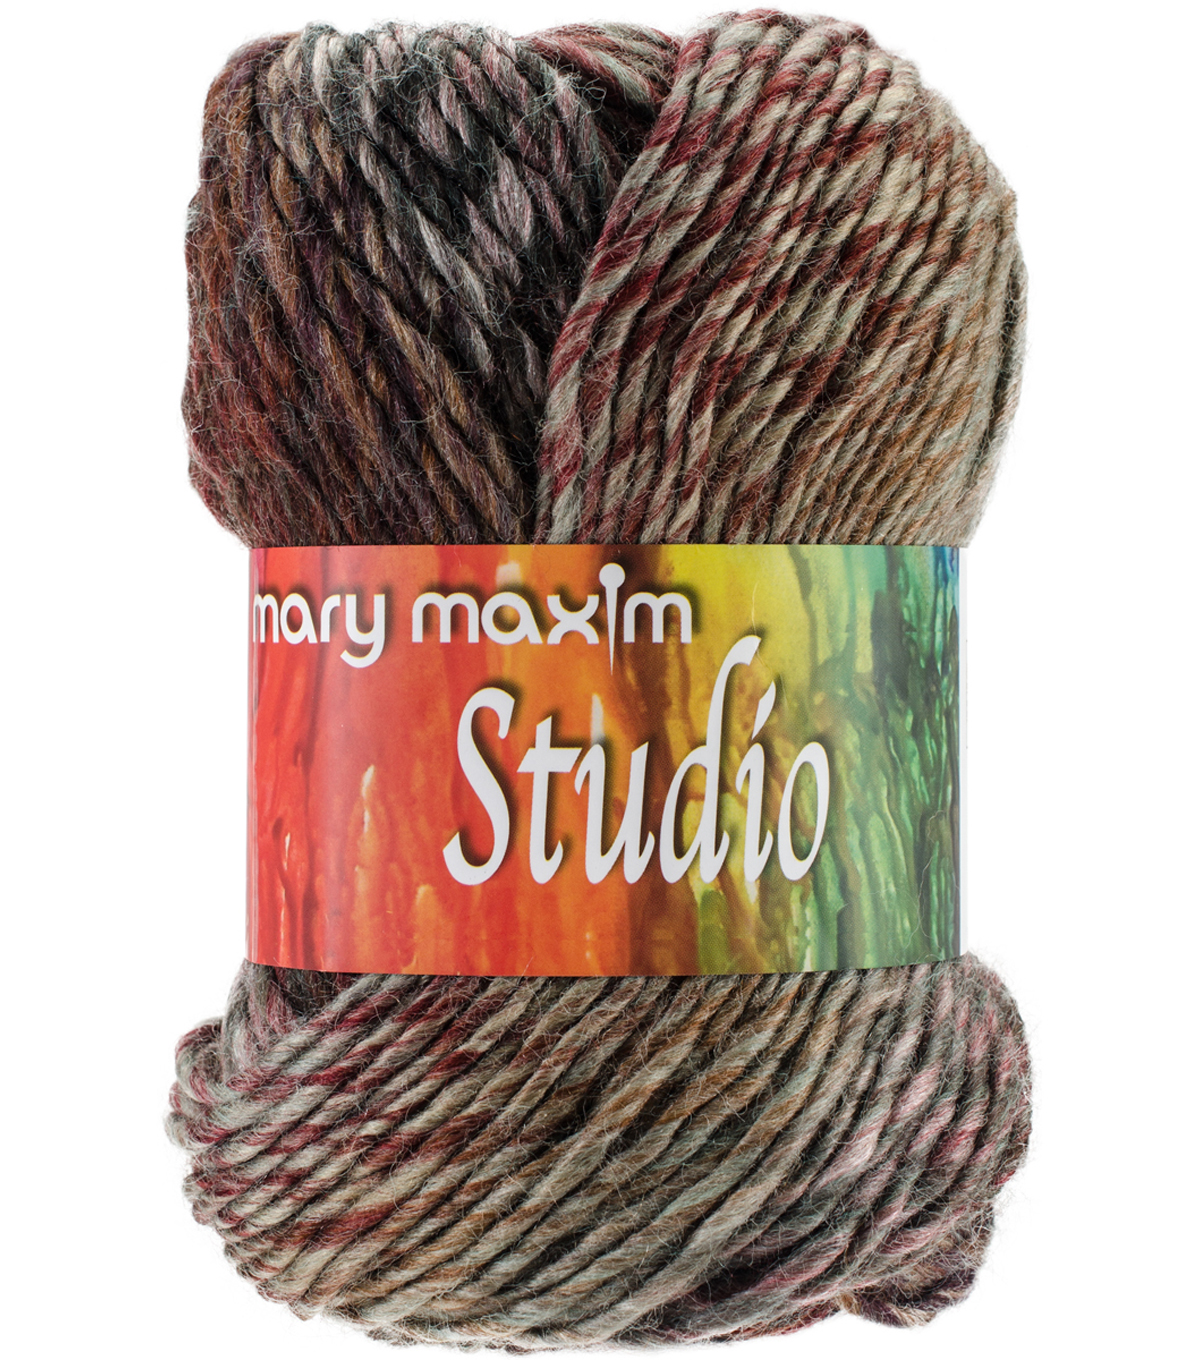 Mary Maxim Studio Yarn